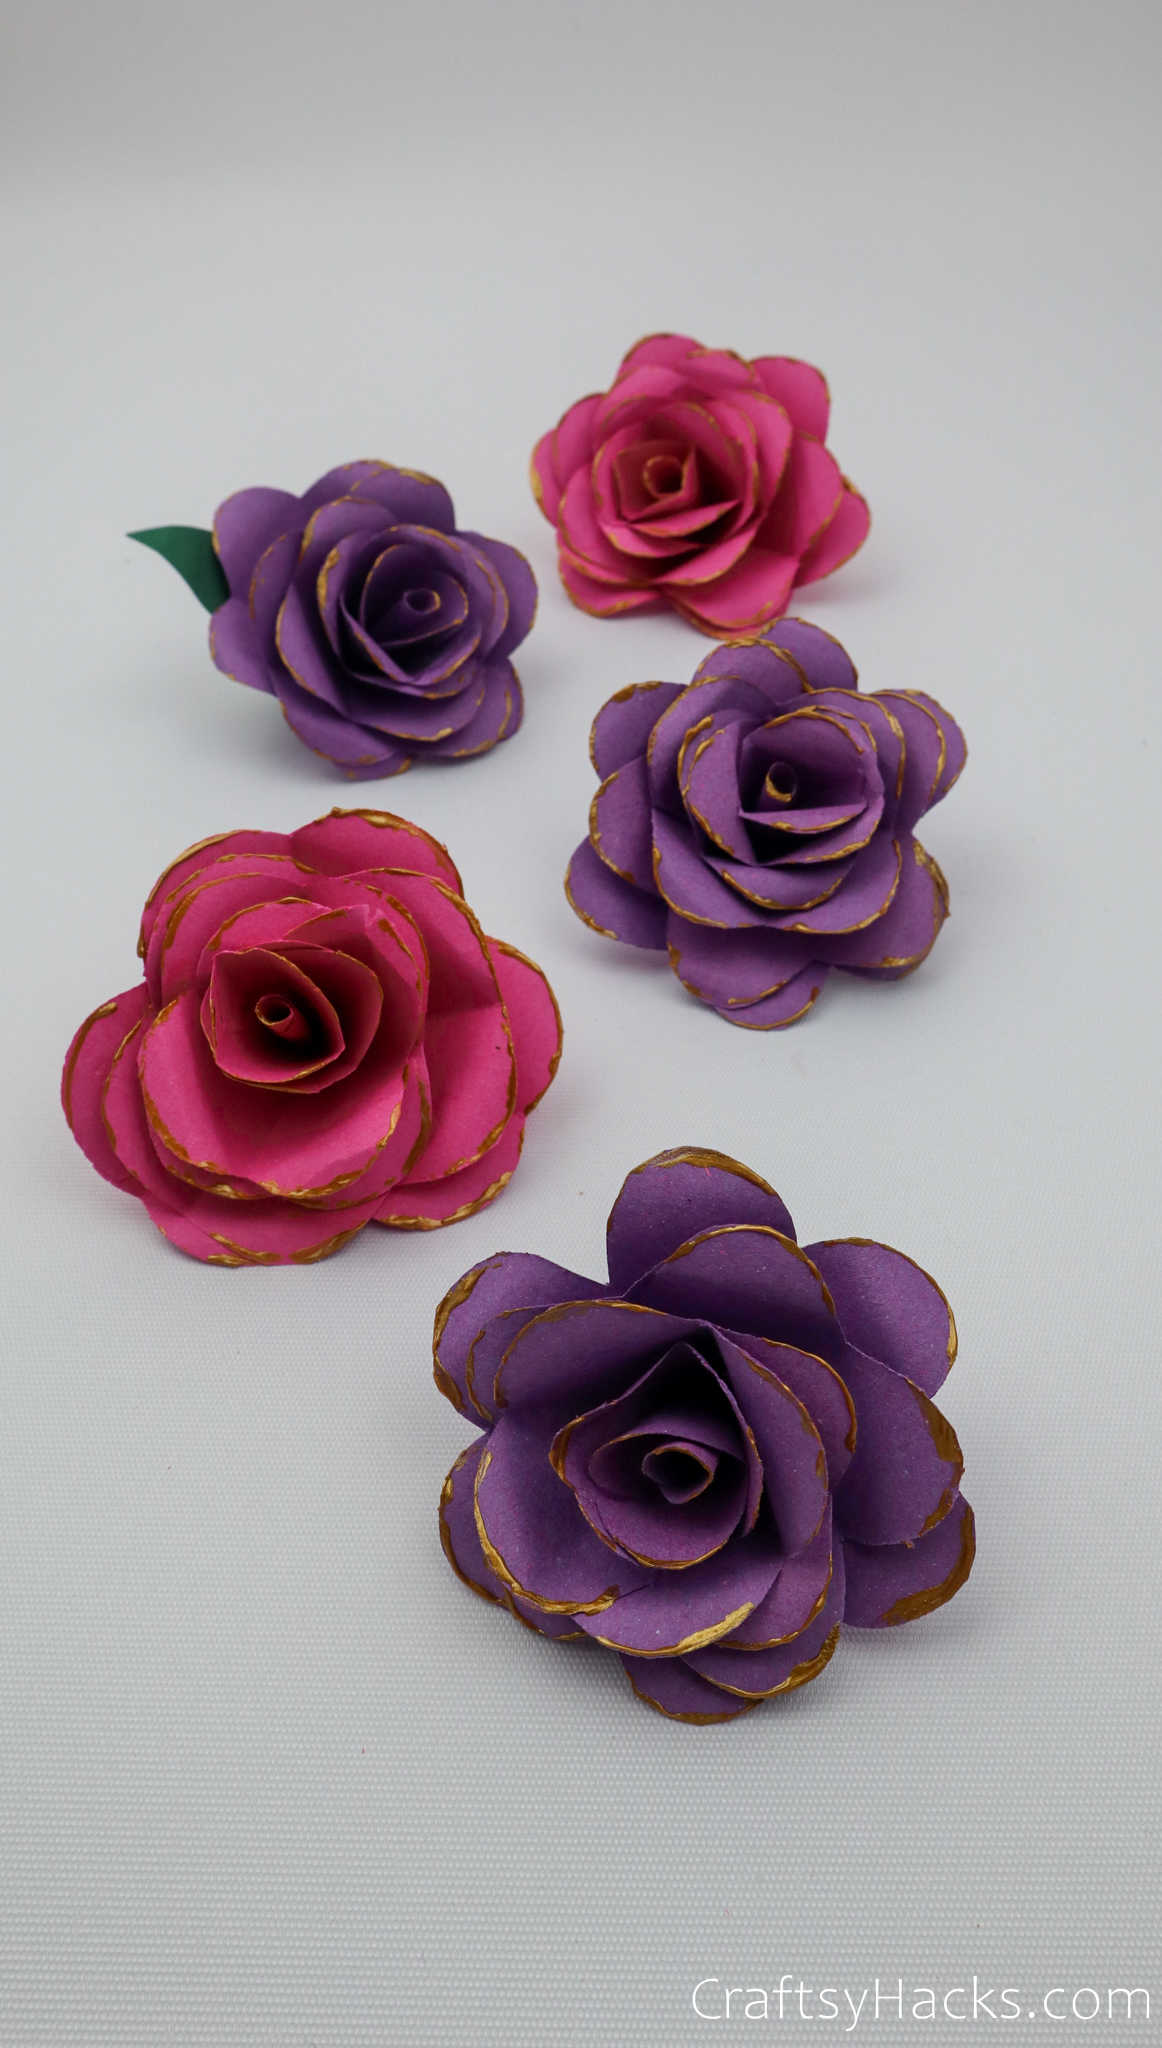 5 finished paper flowers